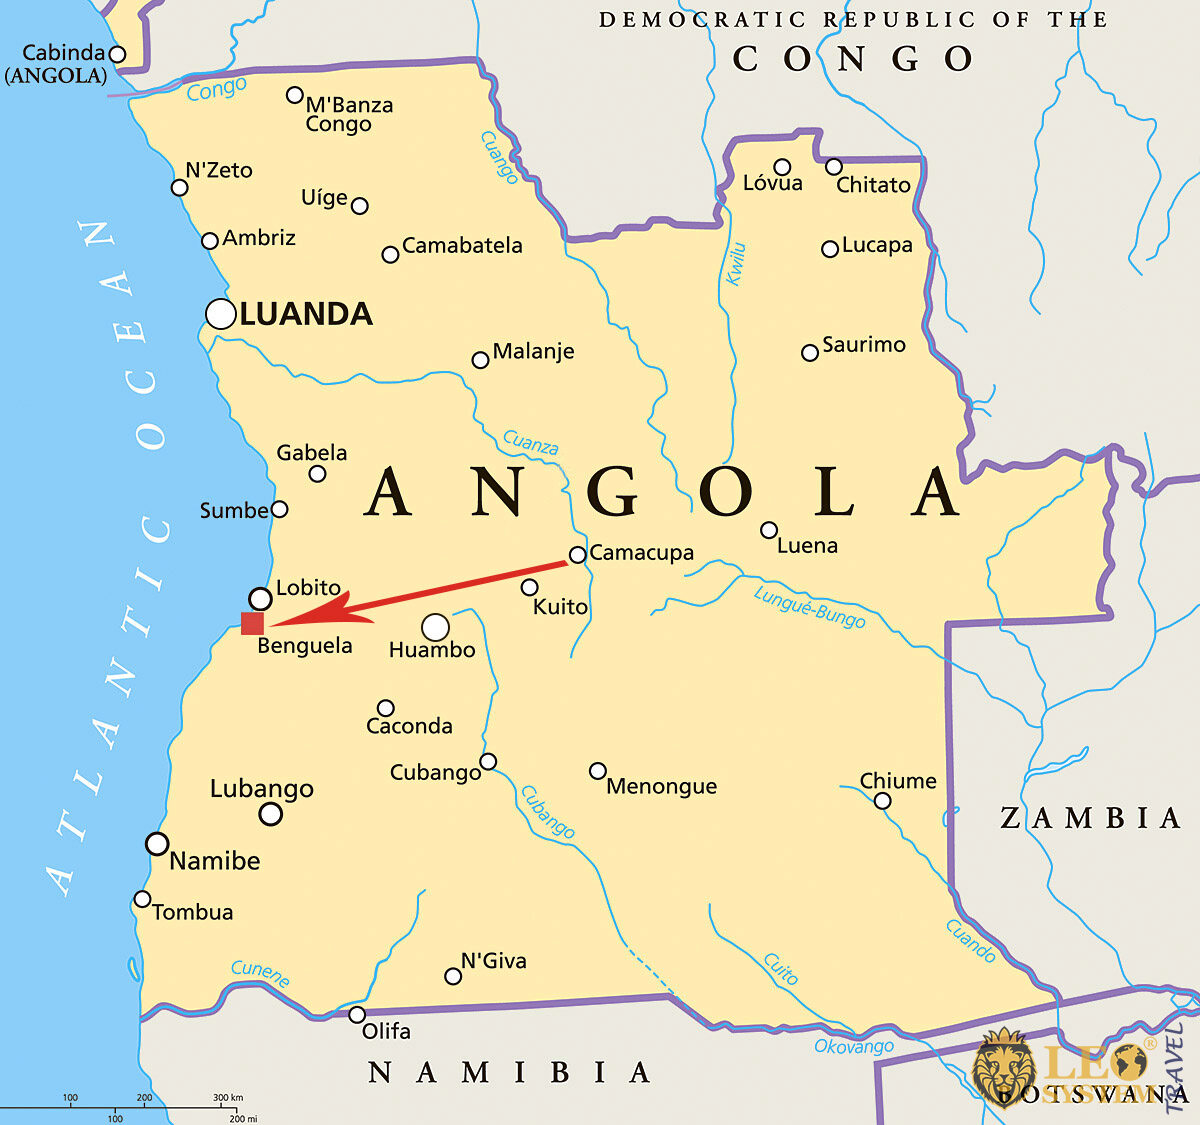 Image of a map showing the location of Benguela, Angola